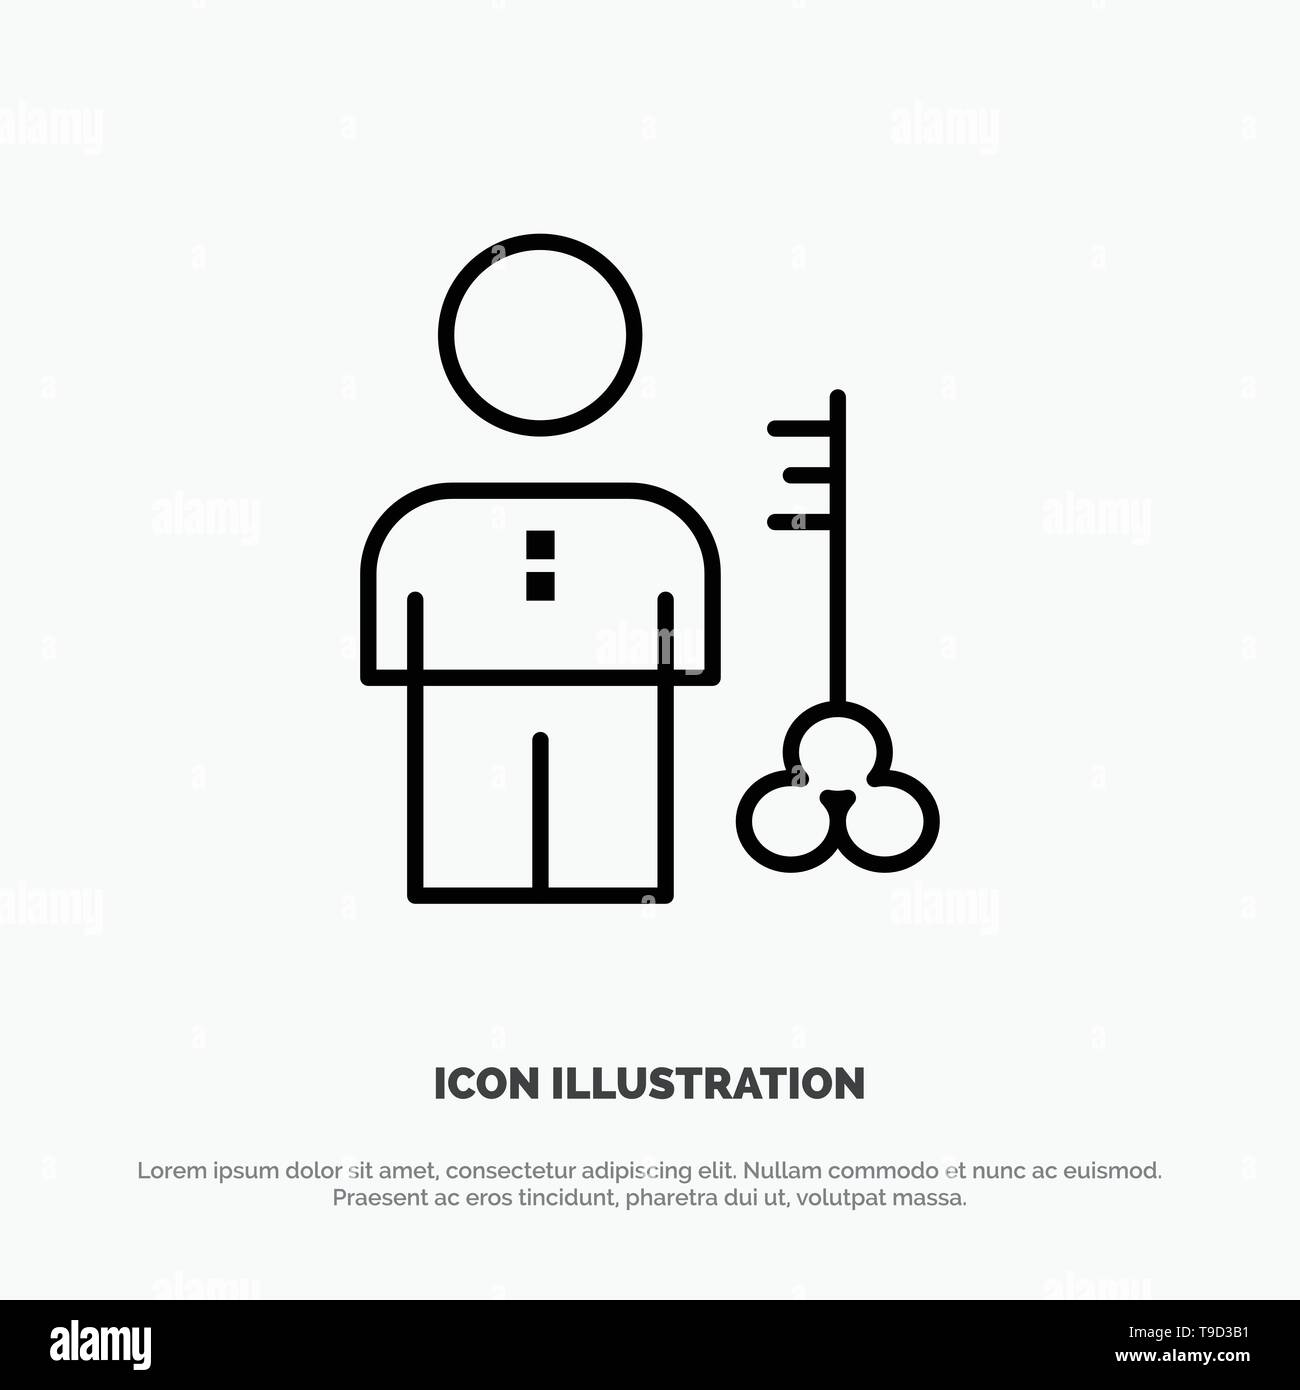 Solution, Key, Lock, Man, Person, Provider, Security Line Icon Vector - Stock Image